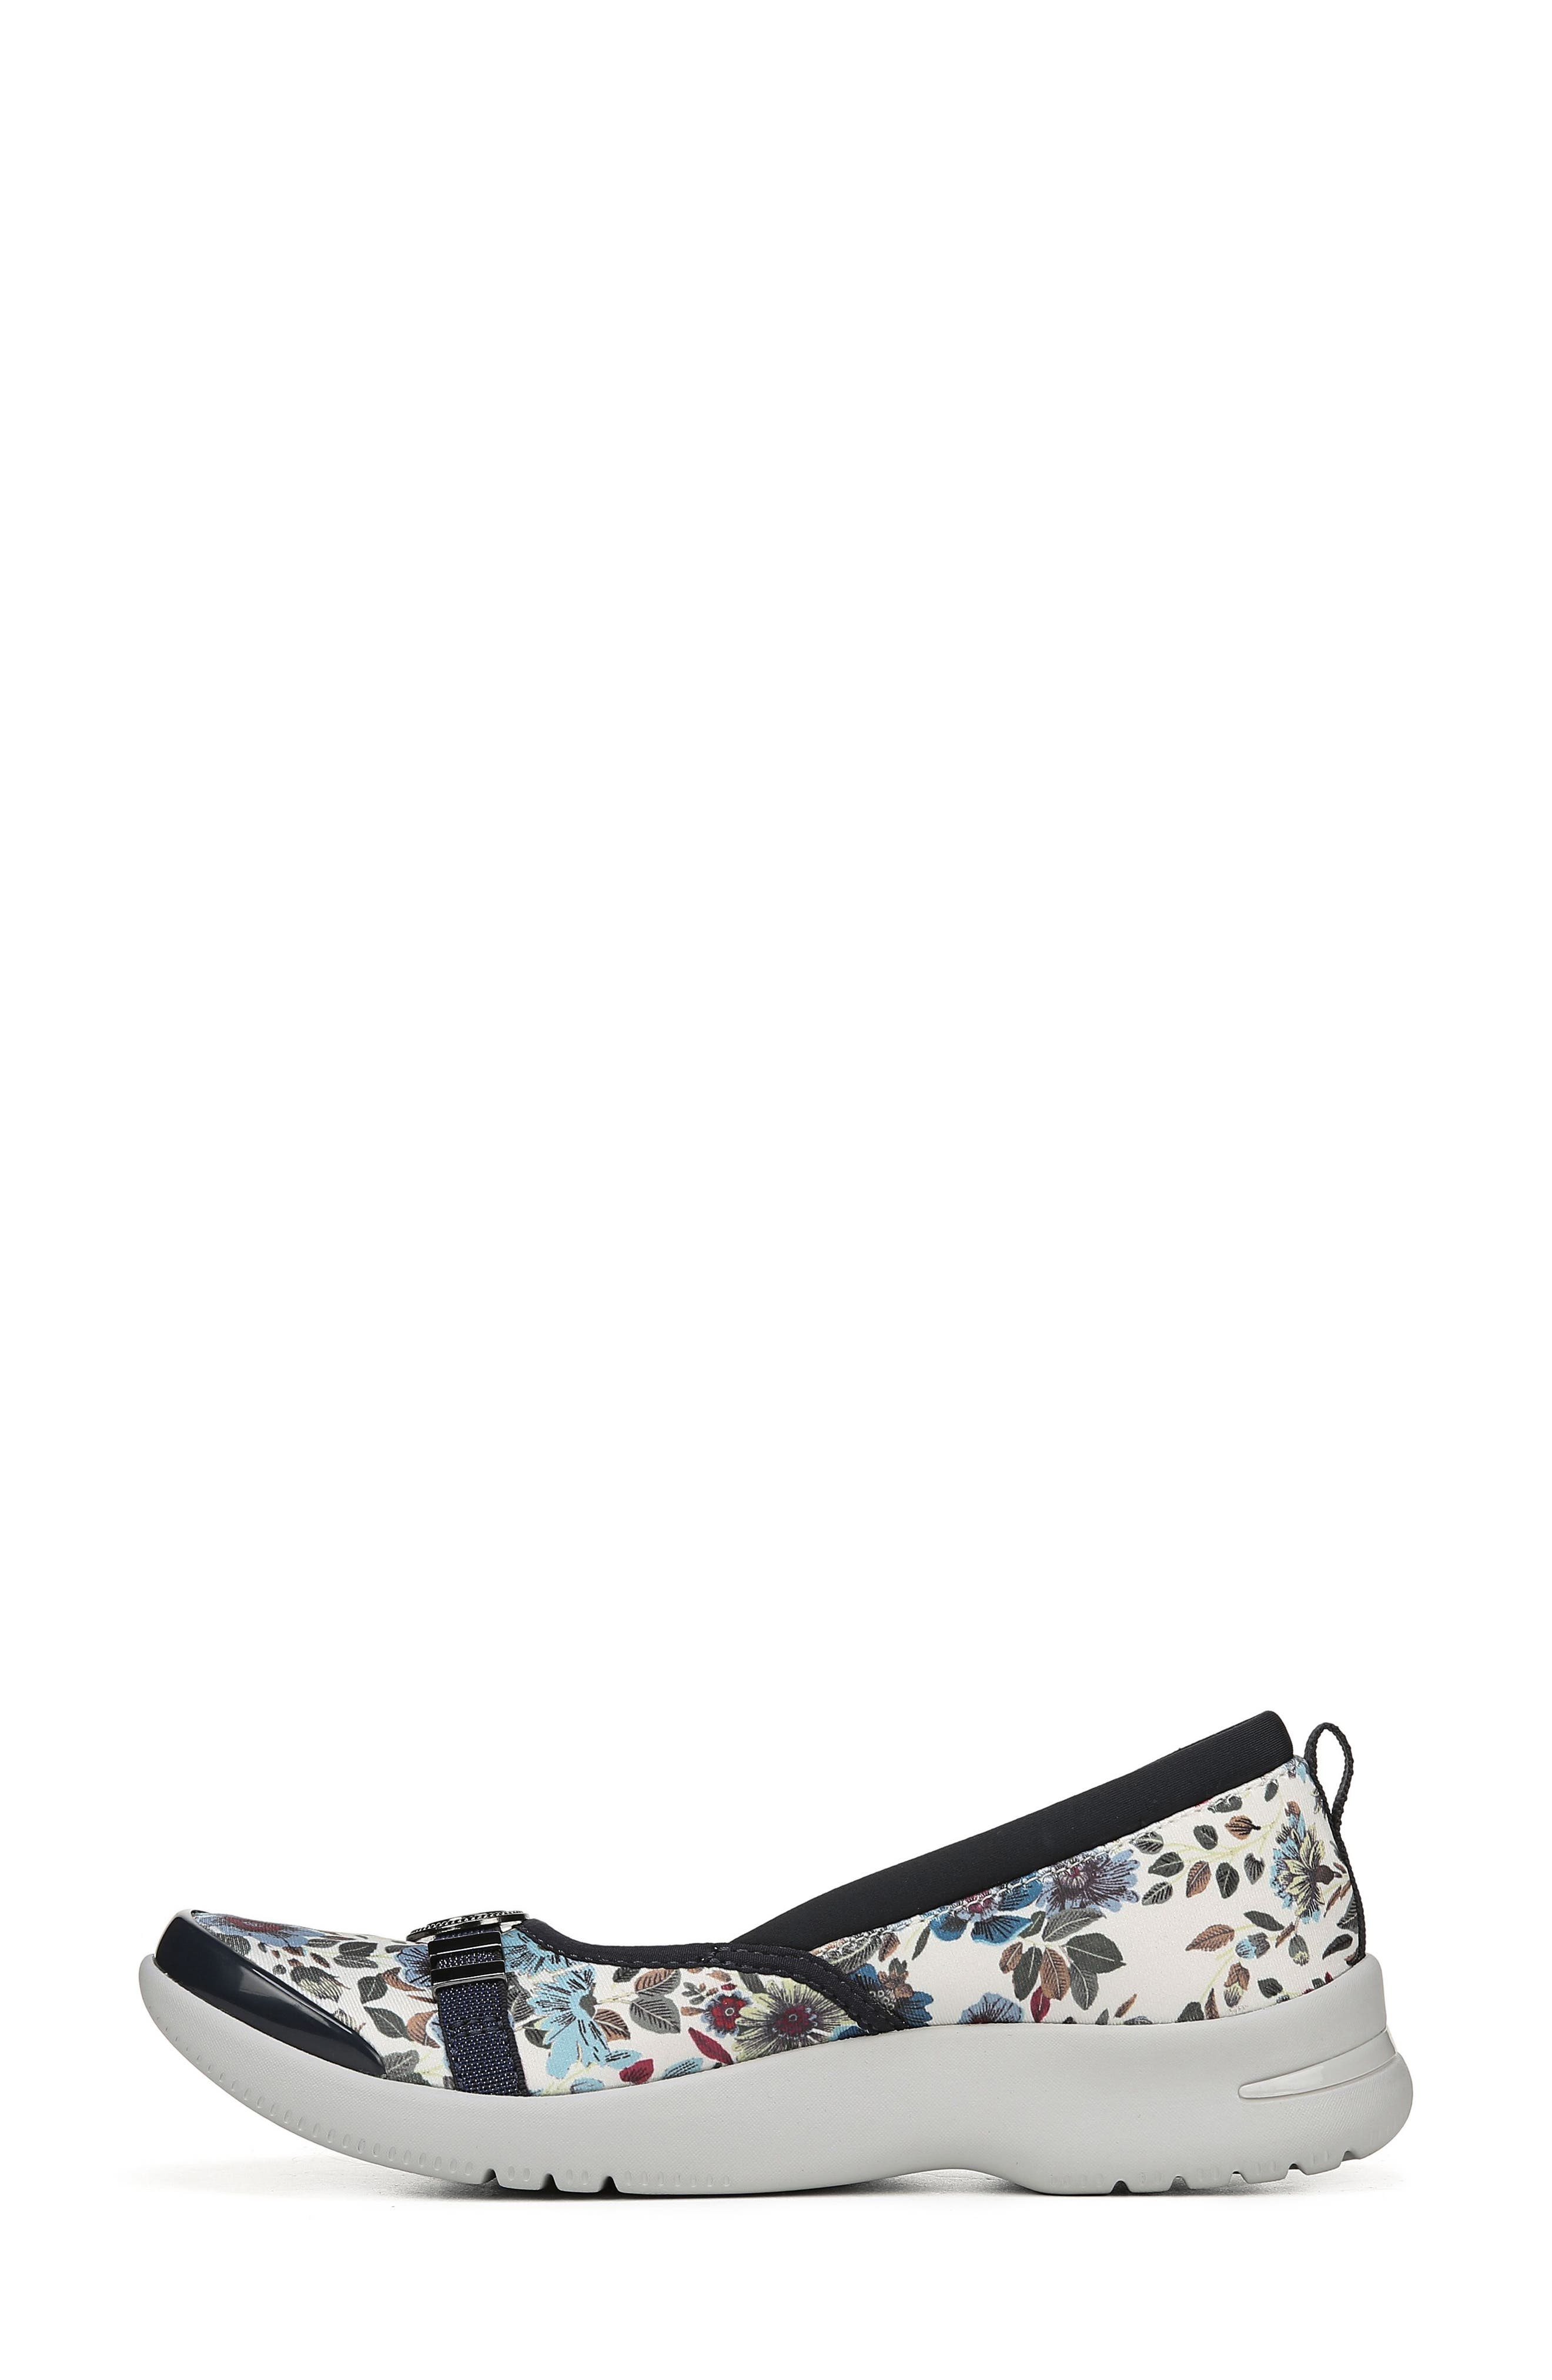 Aspire Ballet Flat,                             Alternate thumbnail 8, color,                             CREAM/ SKY BLUE FLORAL FABRIC